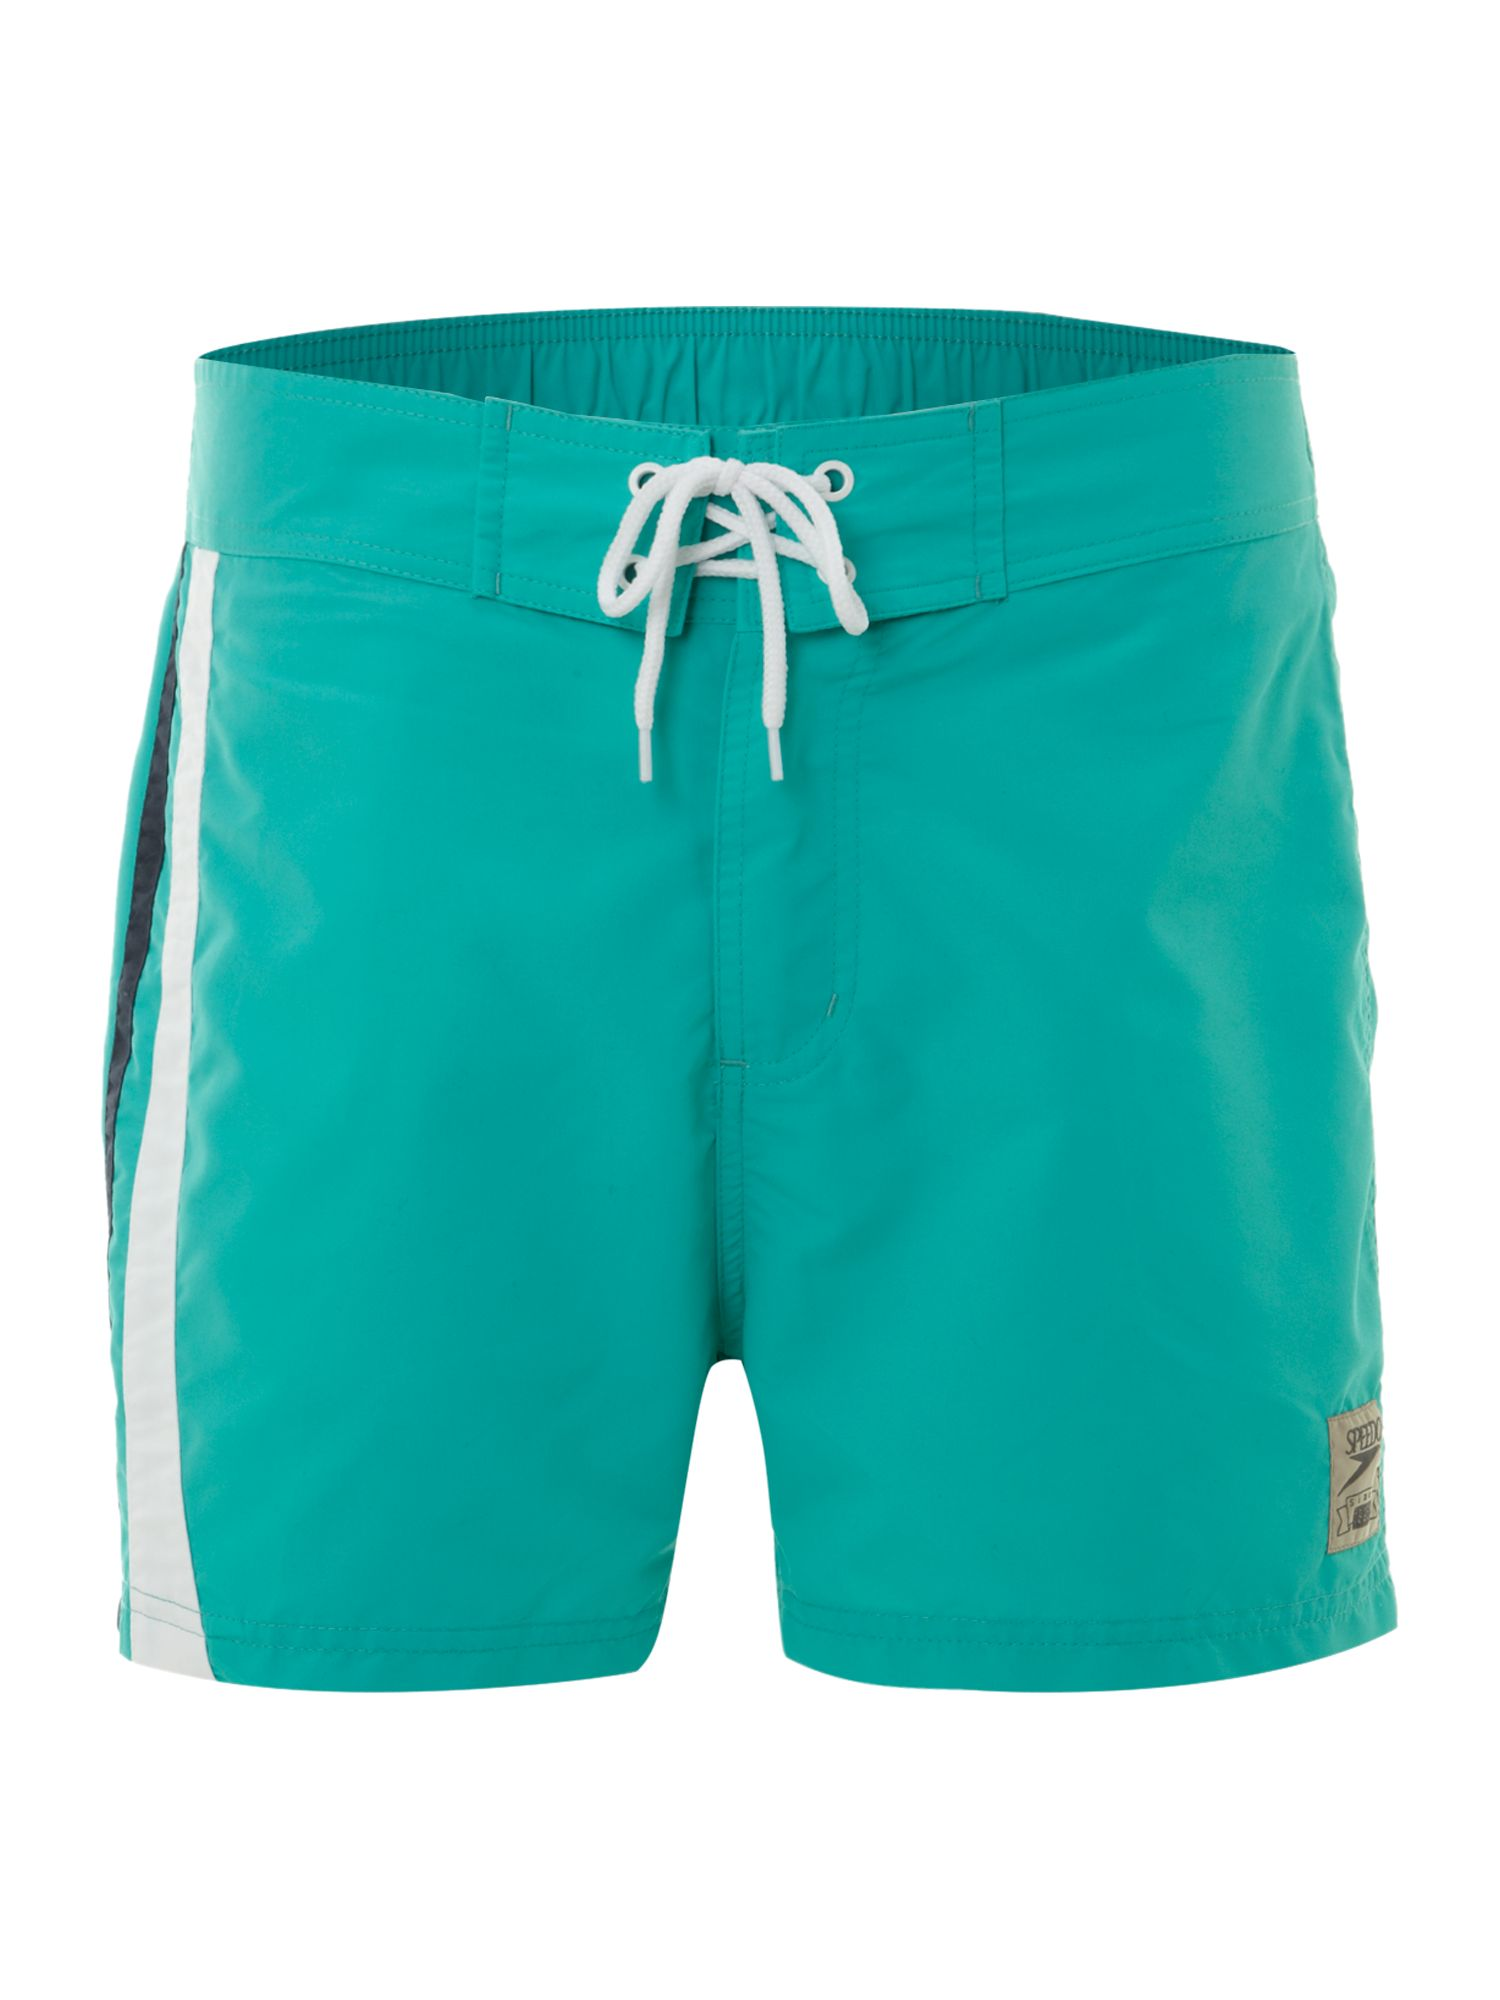 Retroscope swim short